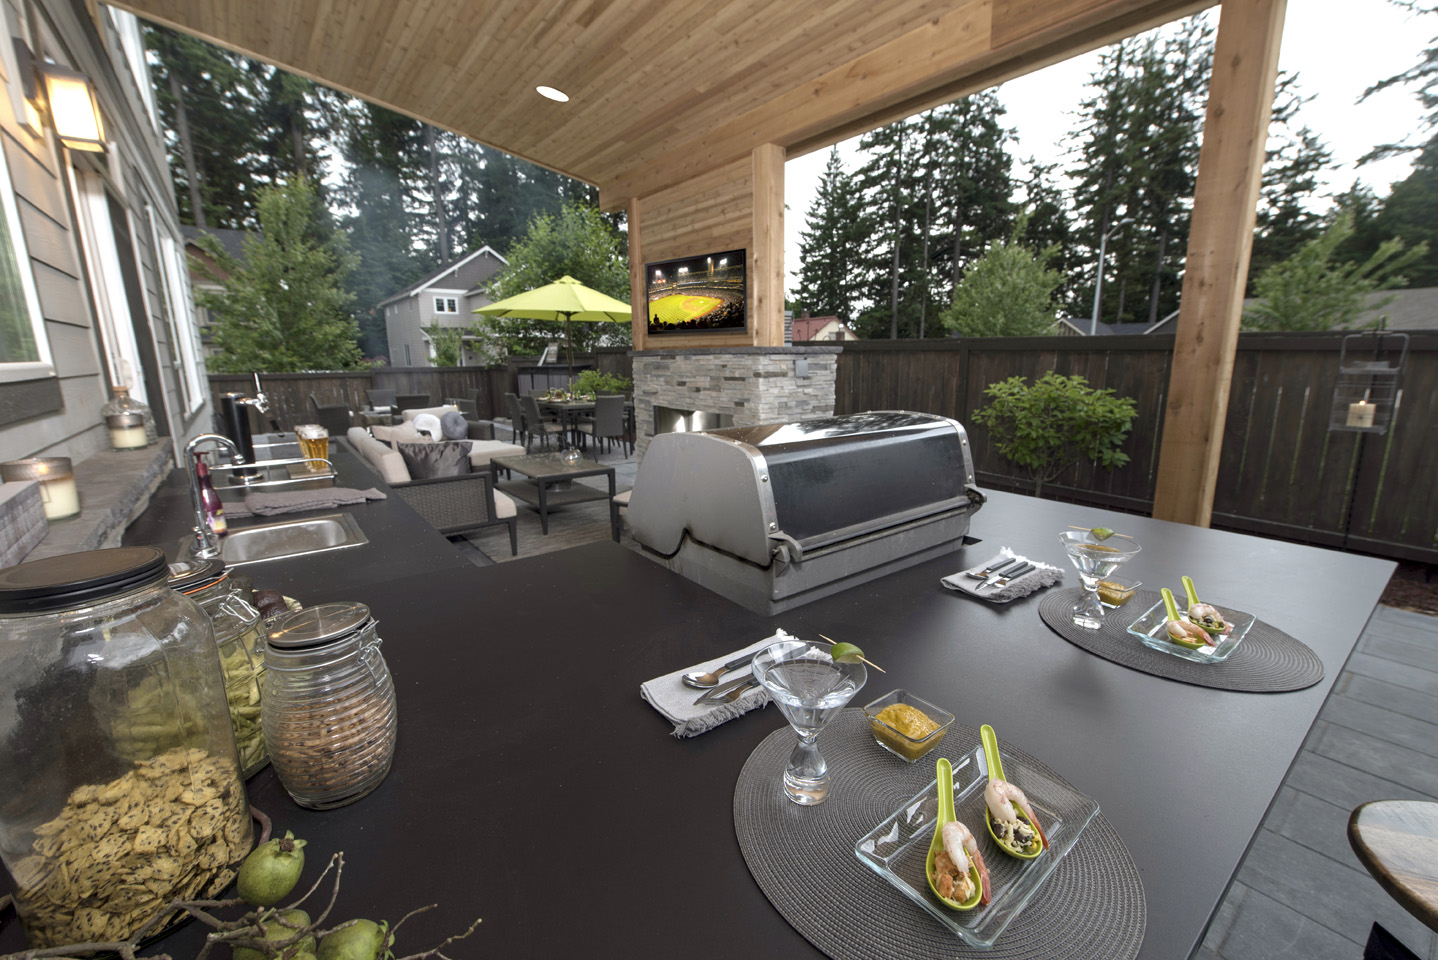 Built-in Bar near Grill – View of TV is sweet for Game Nights